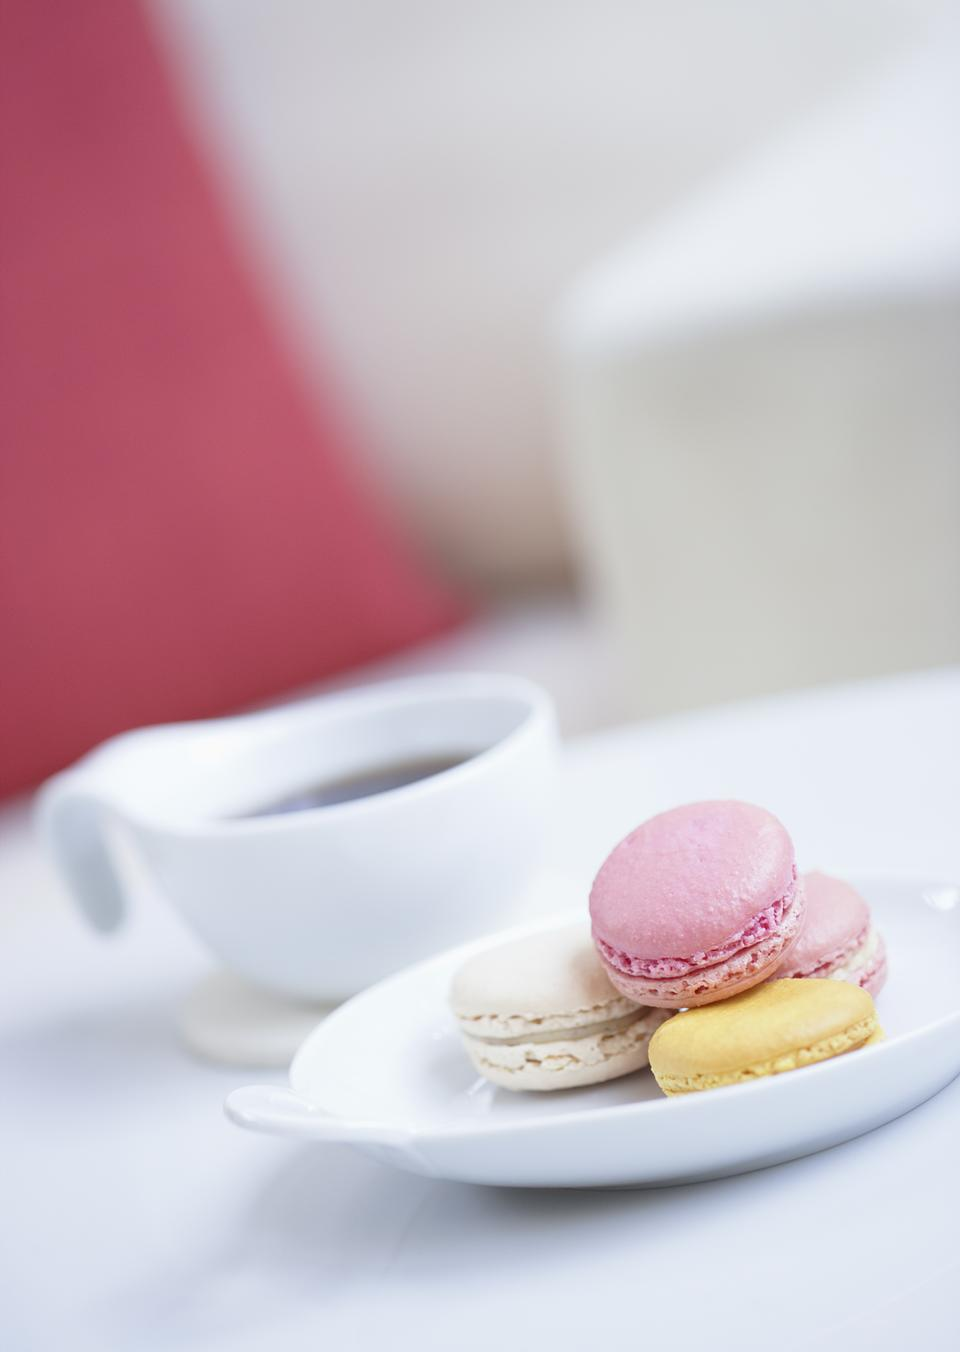 A cup of coffee and macaron